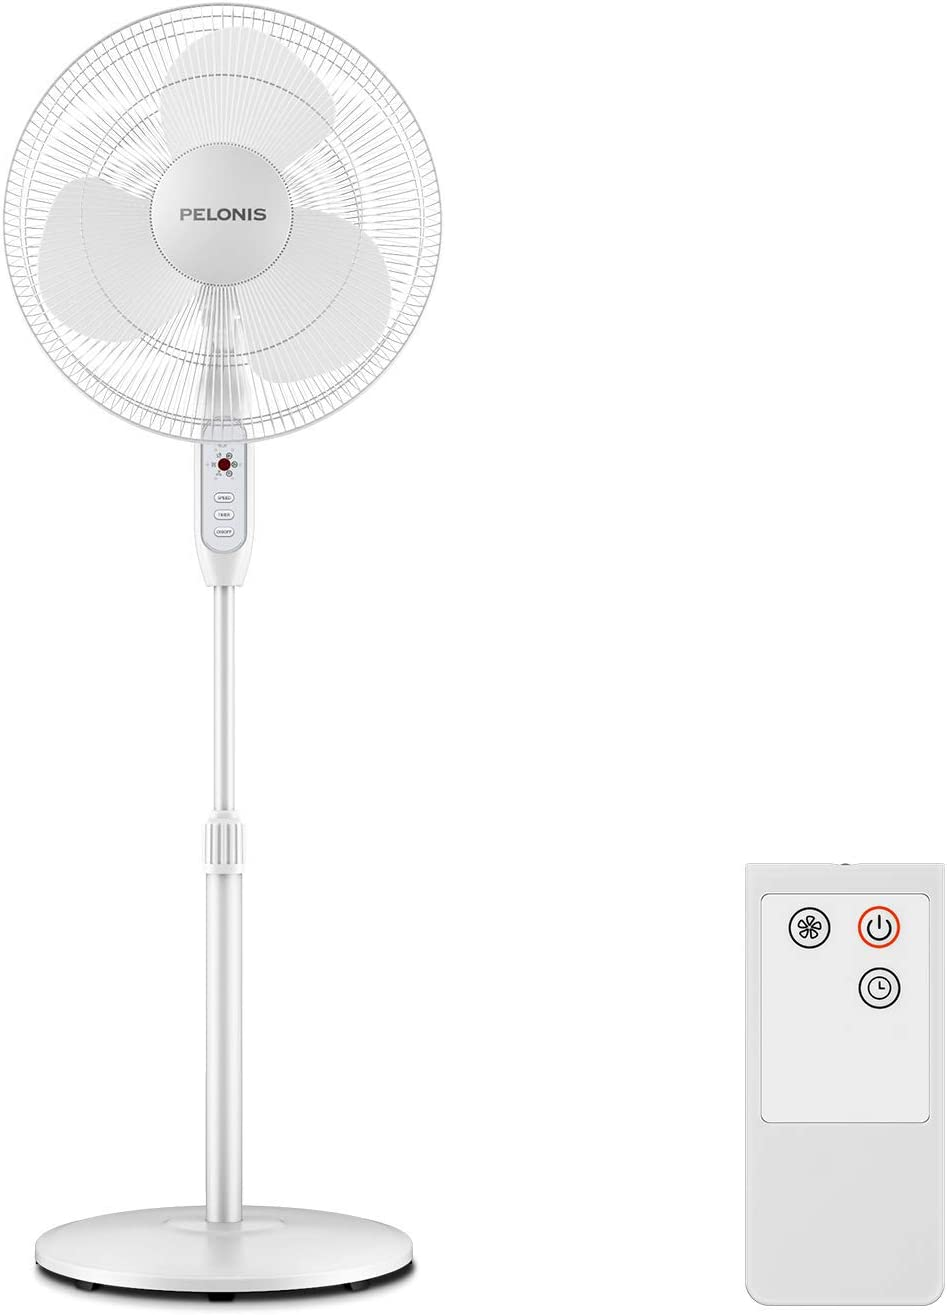 PELONIS 16-Inch 3-Speed Oscillating Pedestal Fan with 7-Hour Timer, Remote Control and Adjustable in Height, FS40-16JR, White